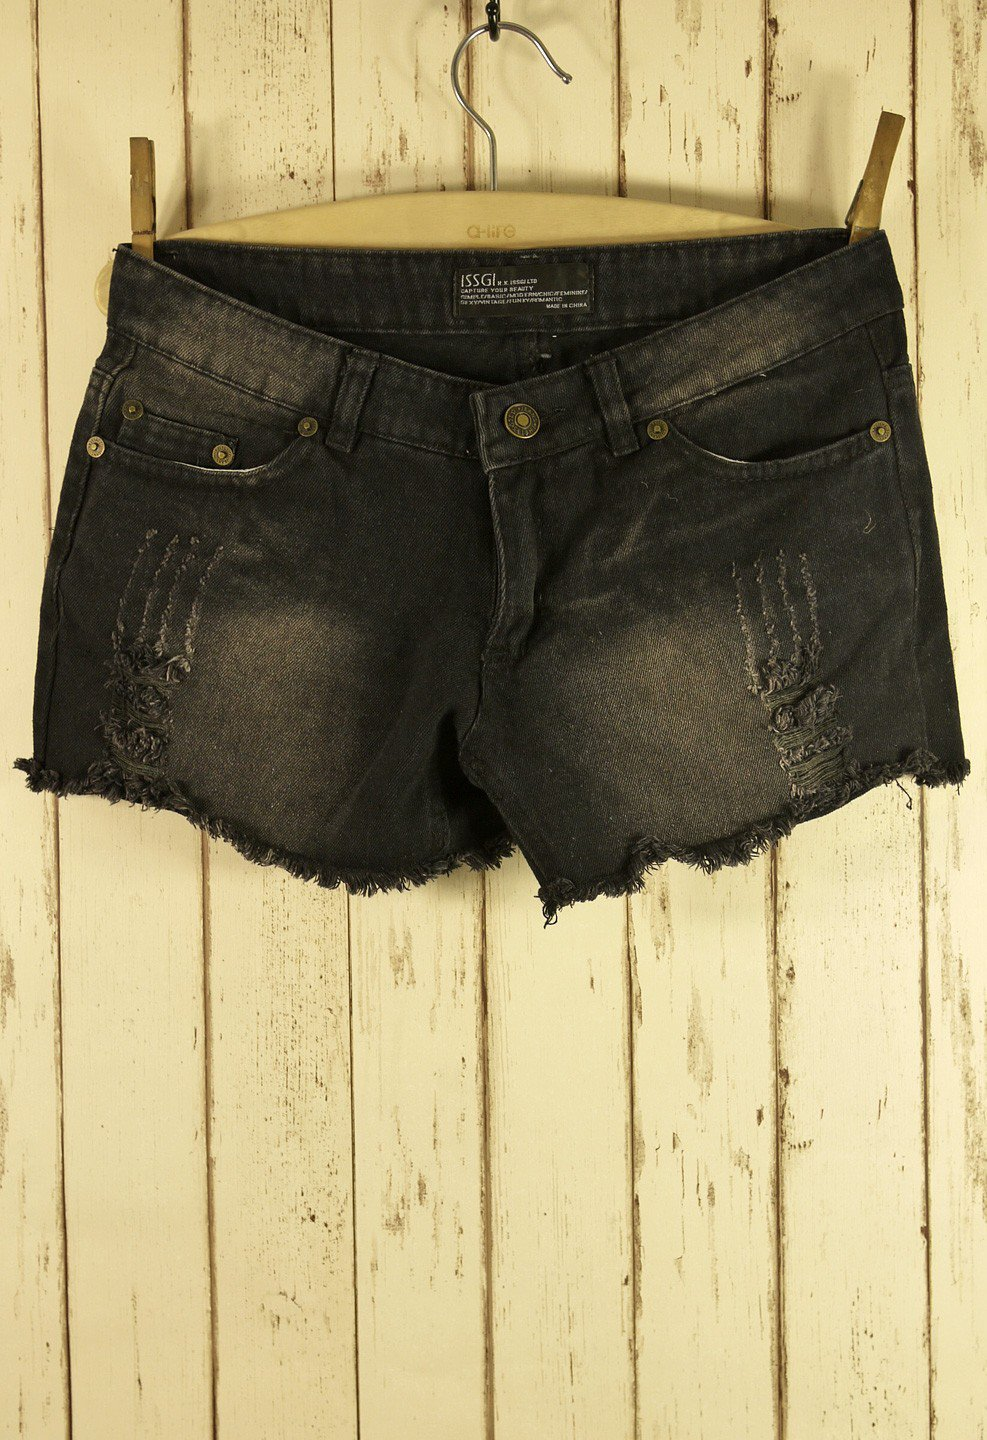 Black Cutoff Erosion Washed Denim Shorts